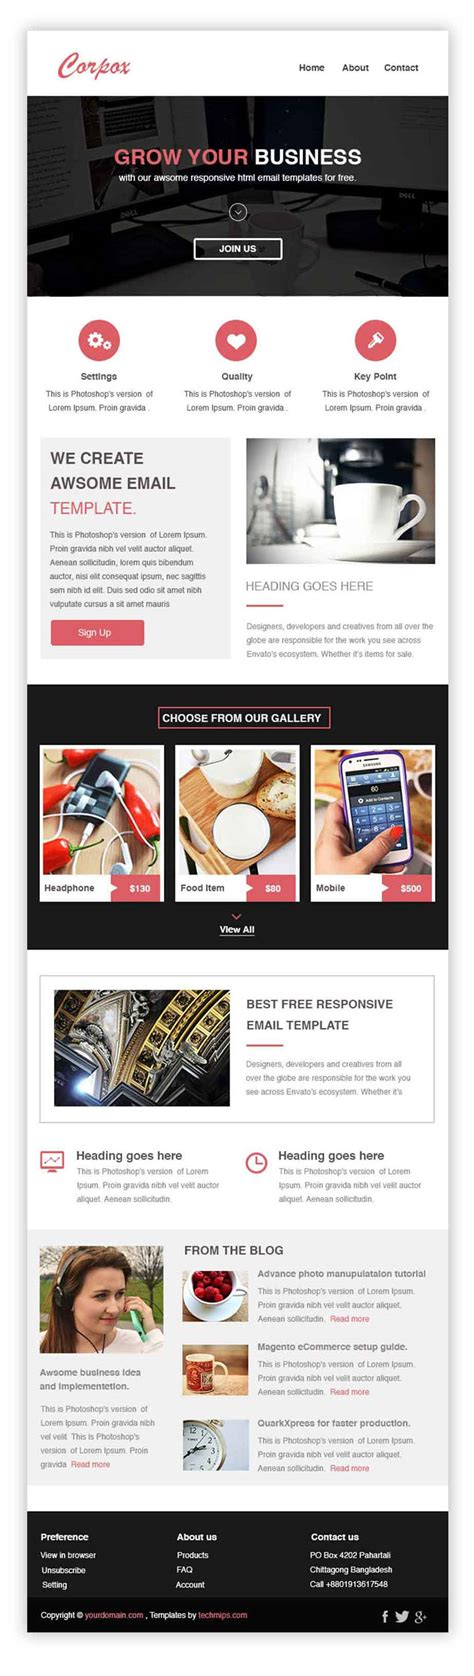 corpox free responsive email newsletter templates